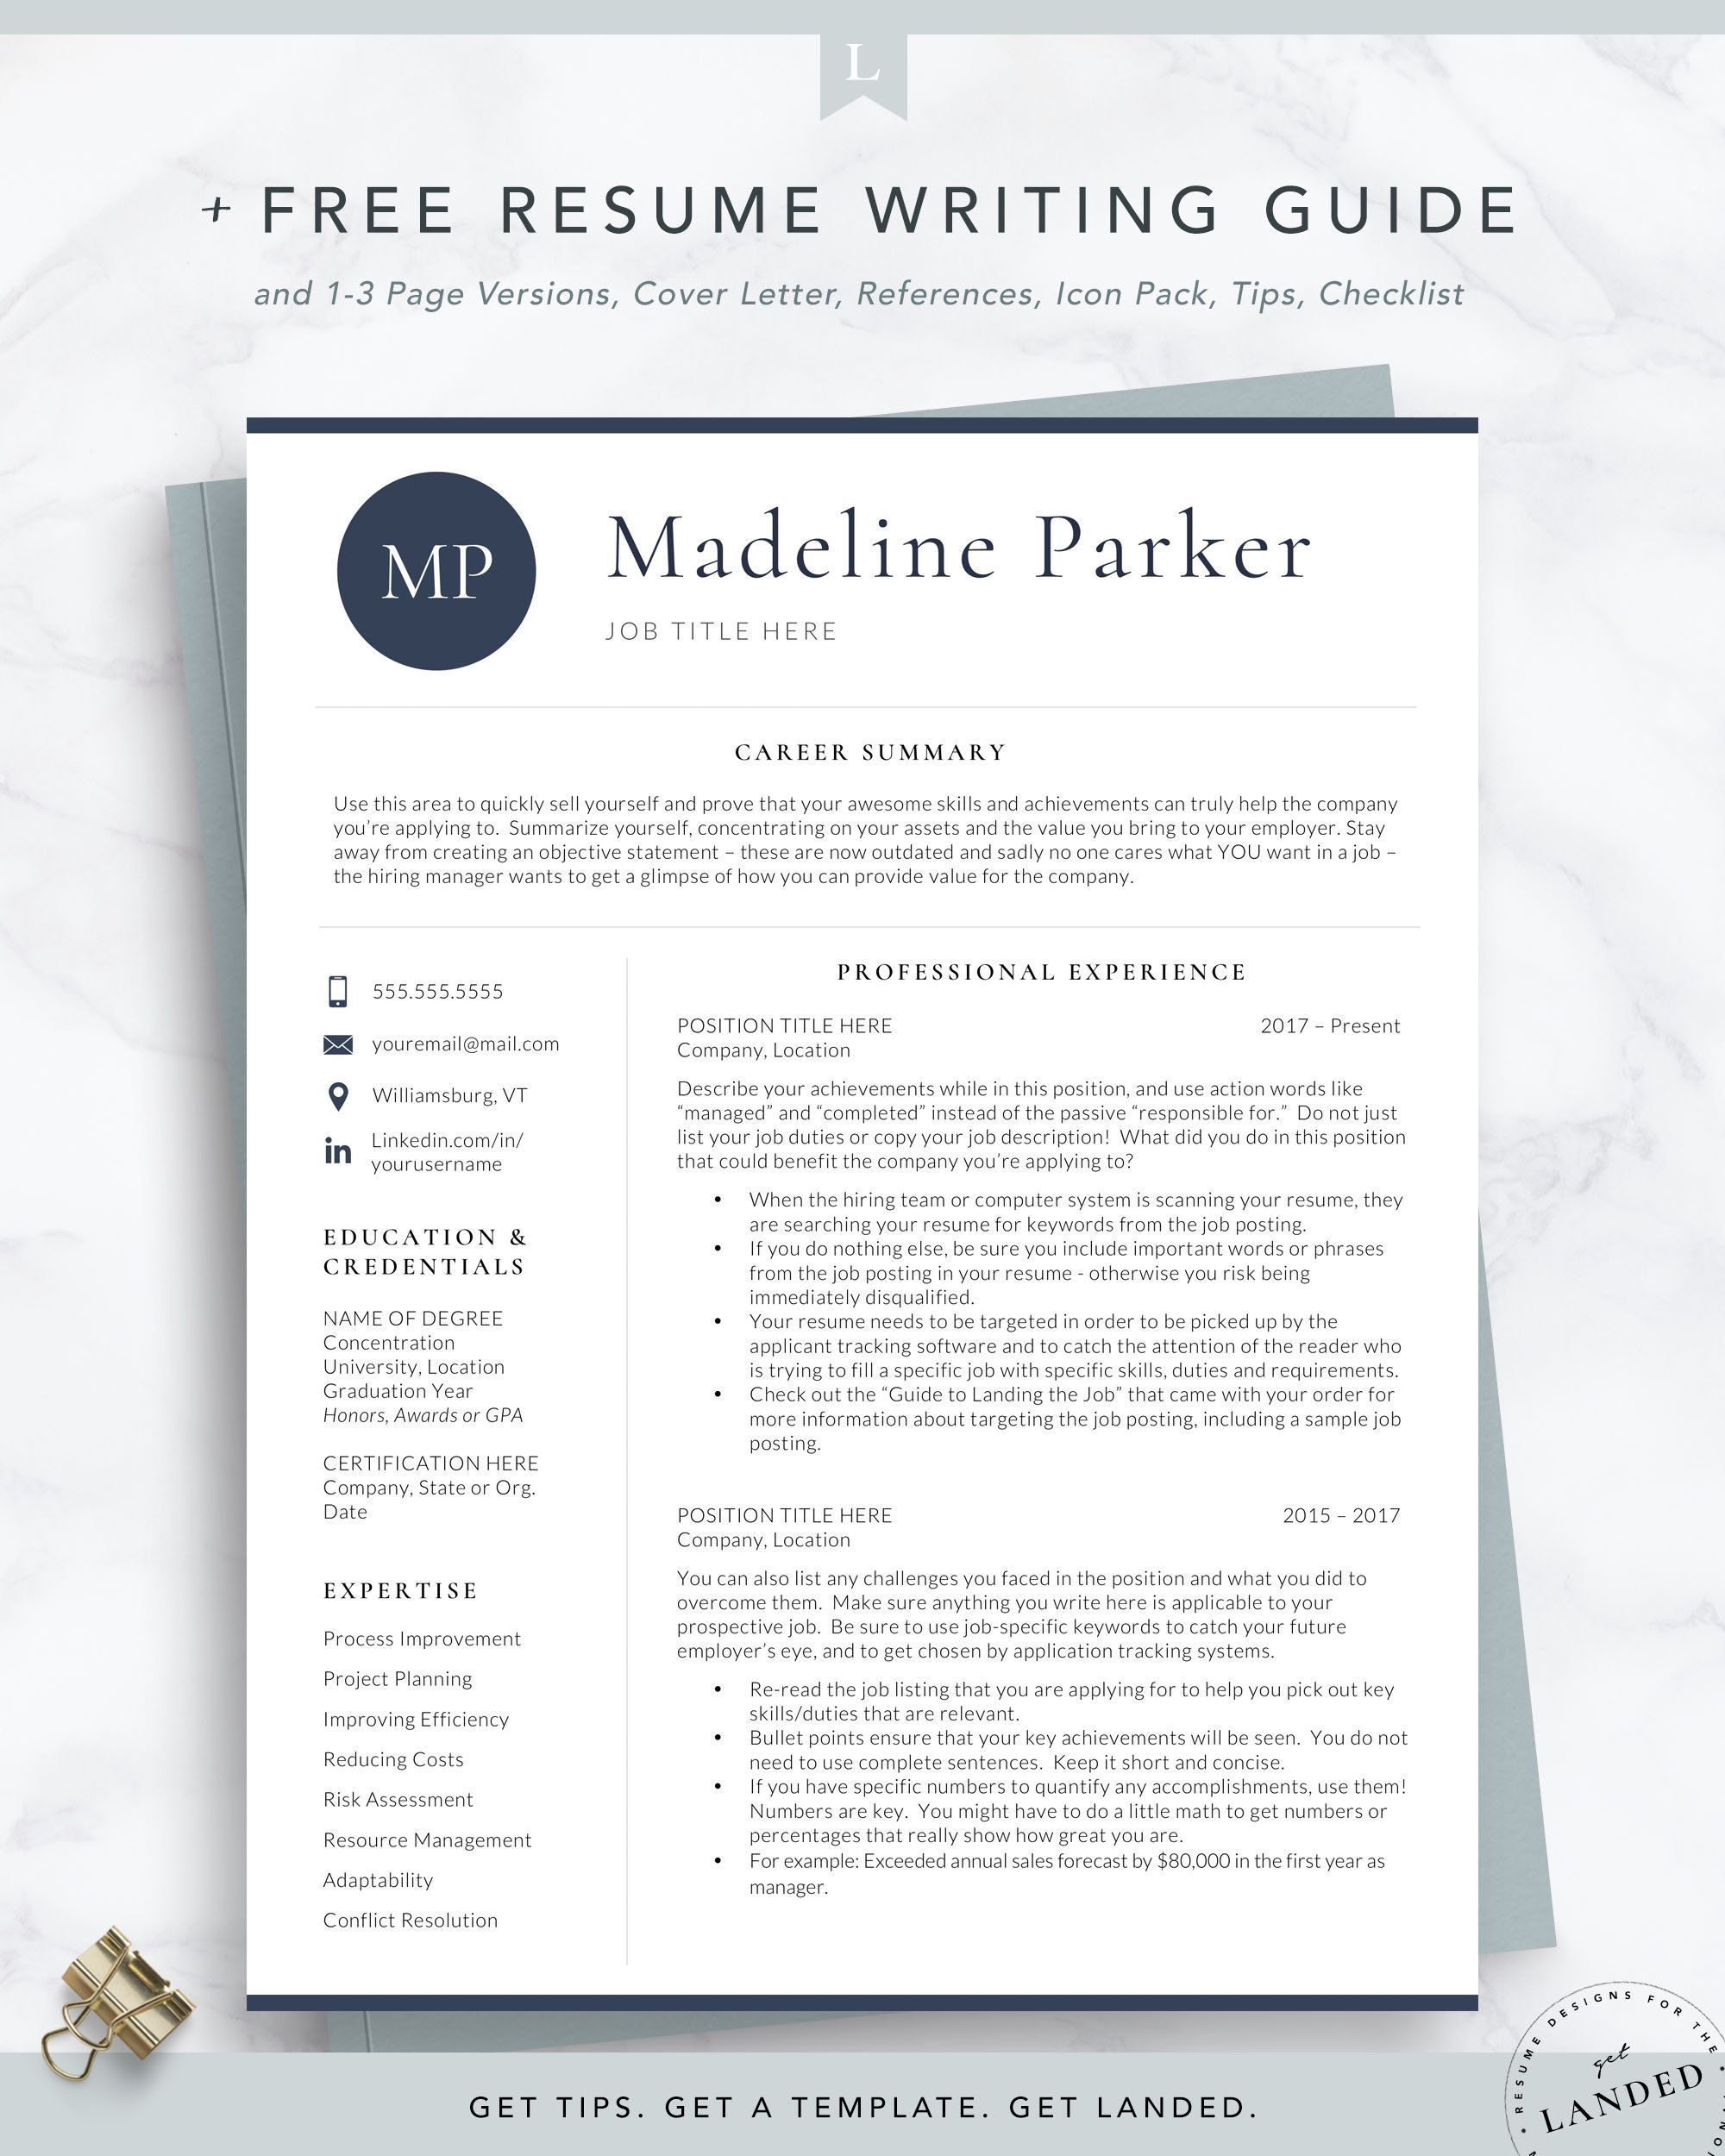 13 Expert Resume writing sample project in 2020 Resume